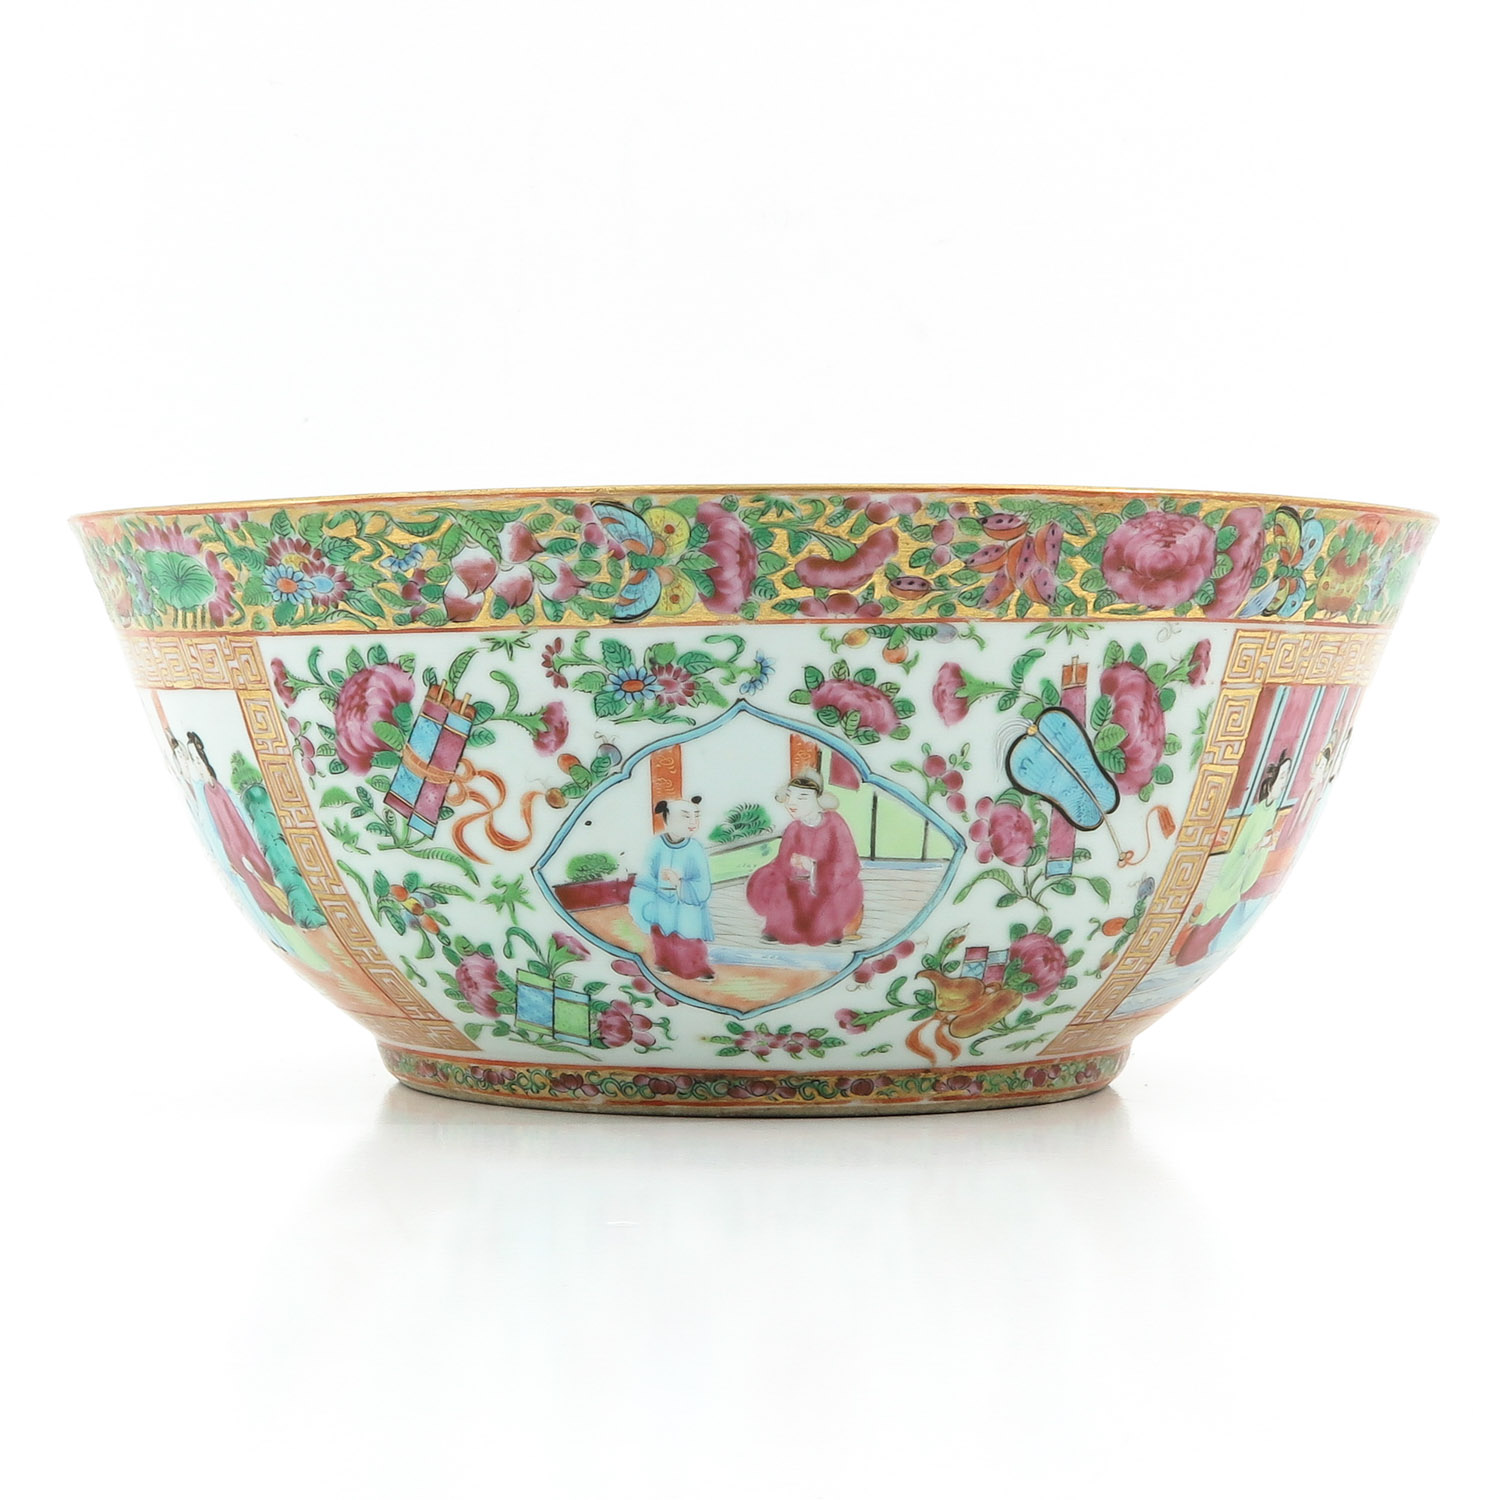 A Cantonese Bowl - Image 2 of 10